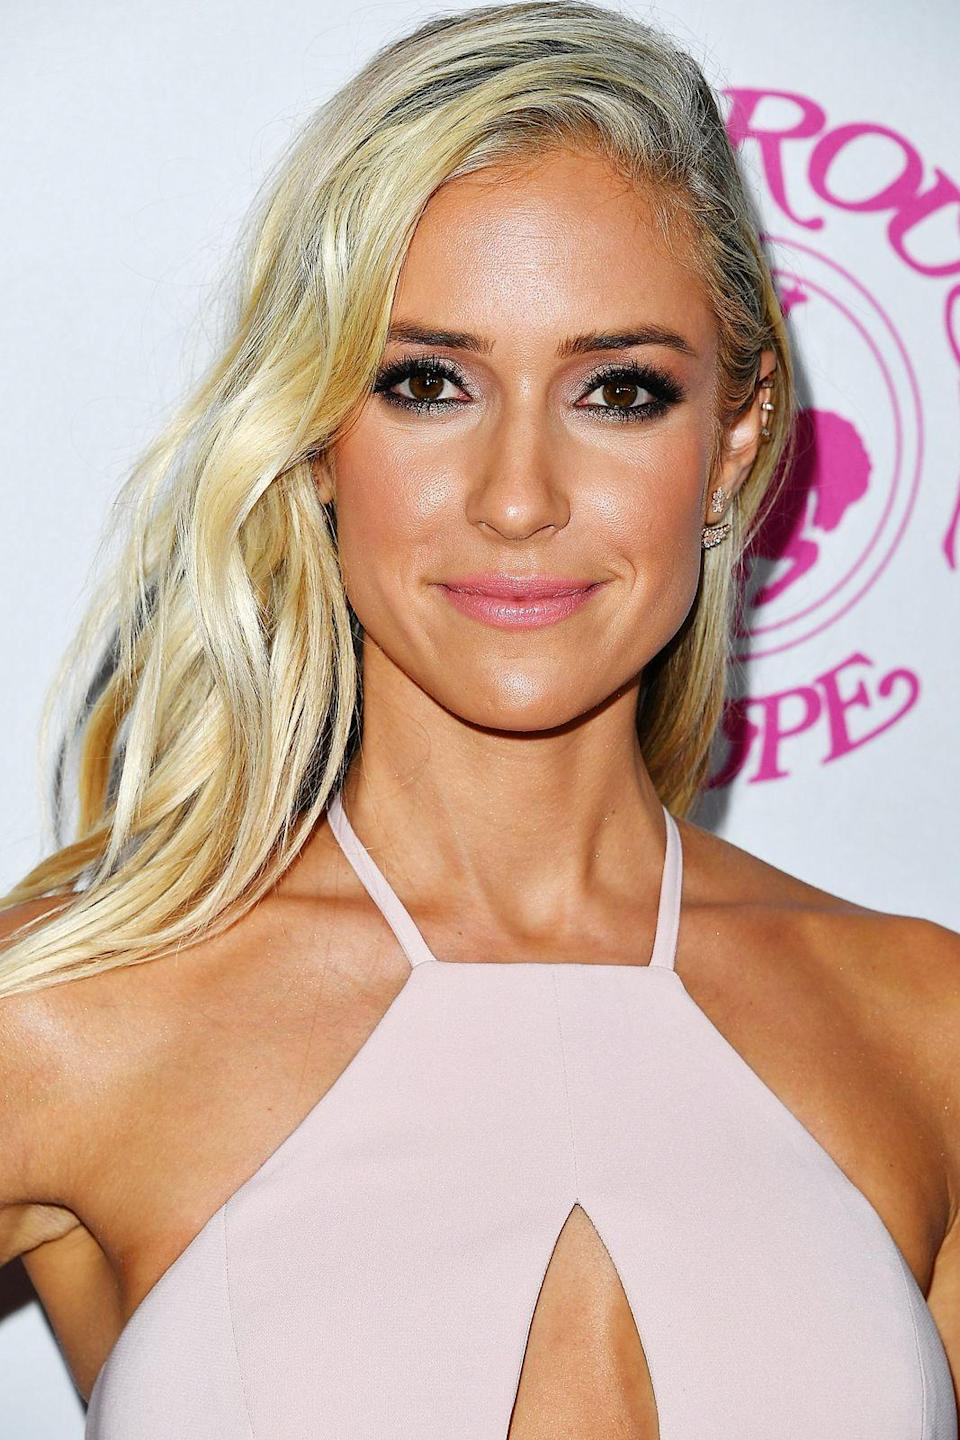 """<p><strong>Carousel Of Hope Ball, 2016</strong></p><p>""""This is one of my favourite <a href=""""http://www.refinery29.com/2016/10/126019/kristin-cavallari-platinum-blonde-hair"""" rel=""""nofollow noopener"""" target=""""_blank"""" data-ylk=""""slk:red carpet moments"""" class=""""link rapid-noclick-resp"""">red carpet moments</a>. Justin Anderson coloured my hair the day before, and going this blonde was not my intention. I don't know why it looked so light, but the next day it did <em>not</em> look that. Maybe it was because the colour was so fresh. Also, I must have done a fake tanner in this photo, because I look incredibly tan.</p><p>""""But I loved this dress. It's not often I get to go to an event and wear a gown, so it was really fun. This was just a night where everything came together. It was fun, I was out supporting juvenile diabetes. My husband has type 1 diabetes, so the cause is near and dear to my heart. So all around, great night.""""</p><span class=""""copyright"""">Photo: Steve Granitz/WireImage.</span>"""